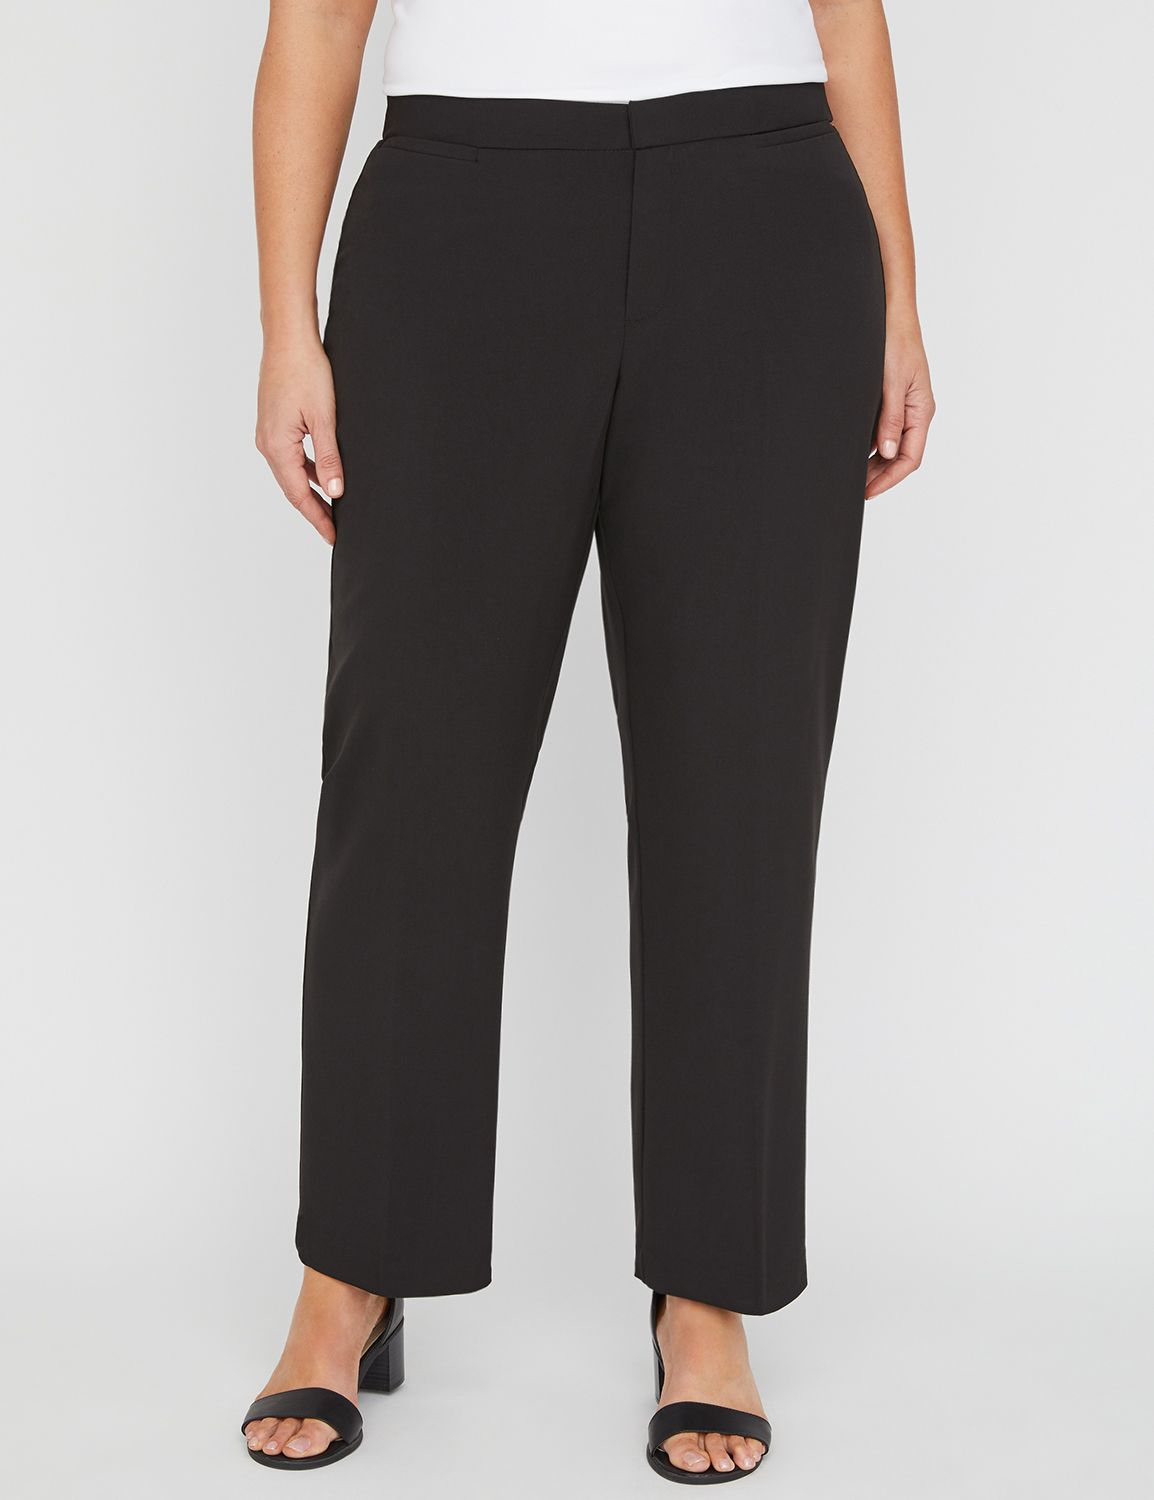 Right Fit Pant (Moderately Curvy) Right Fit Pant (Moderately Curvy) MP-201373932